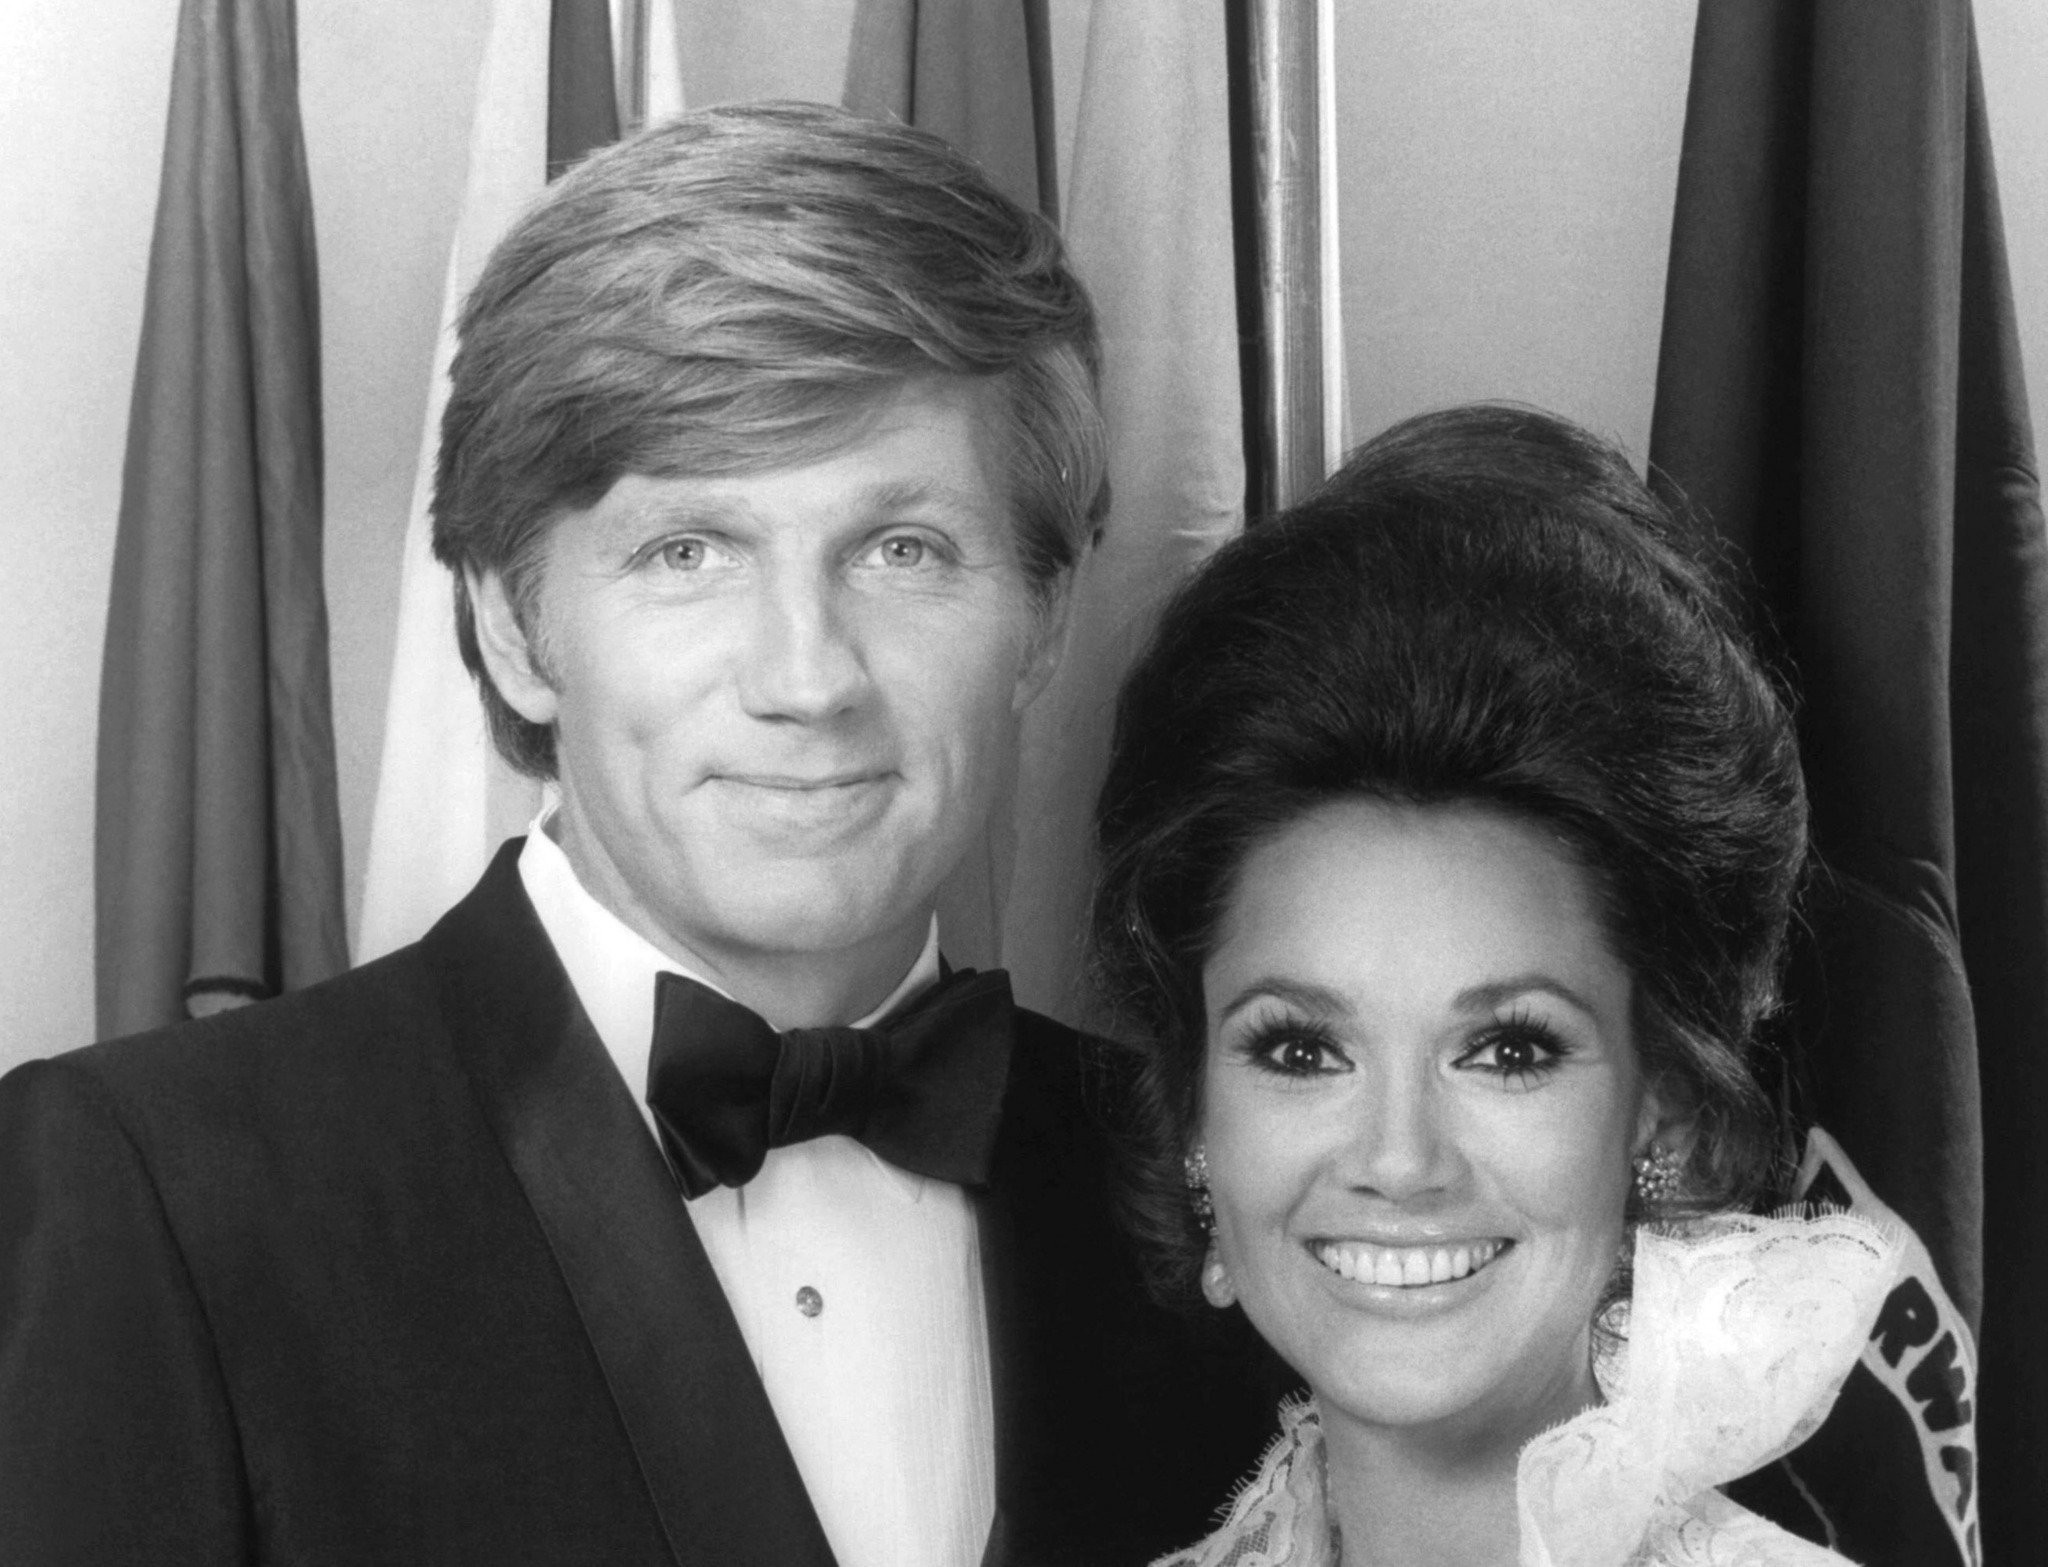 Gary Collins and Mary Ann Mobley image